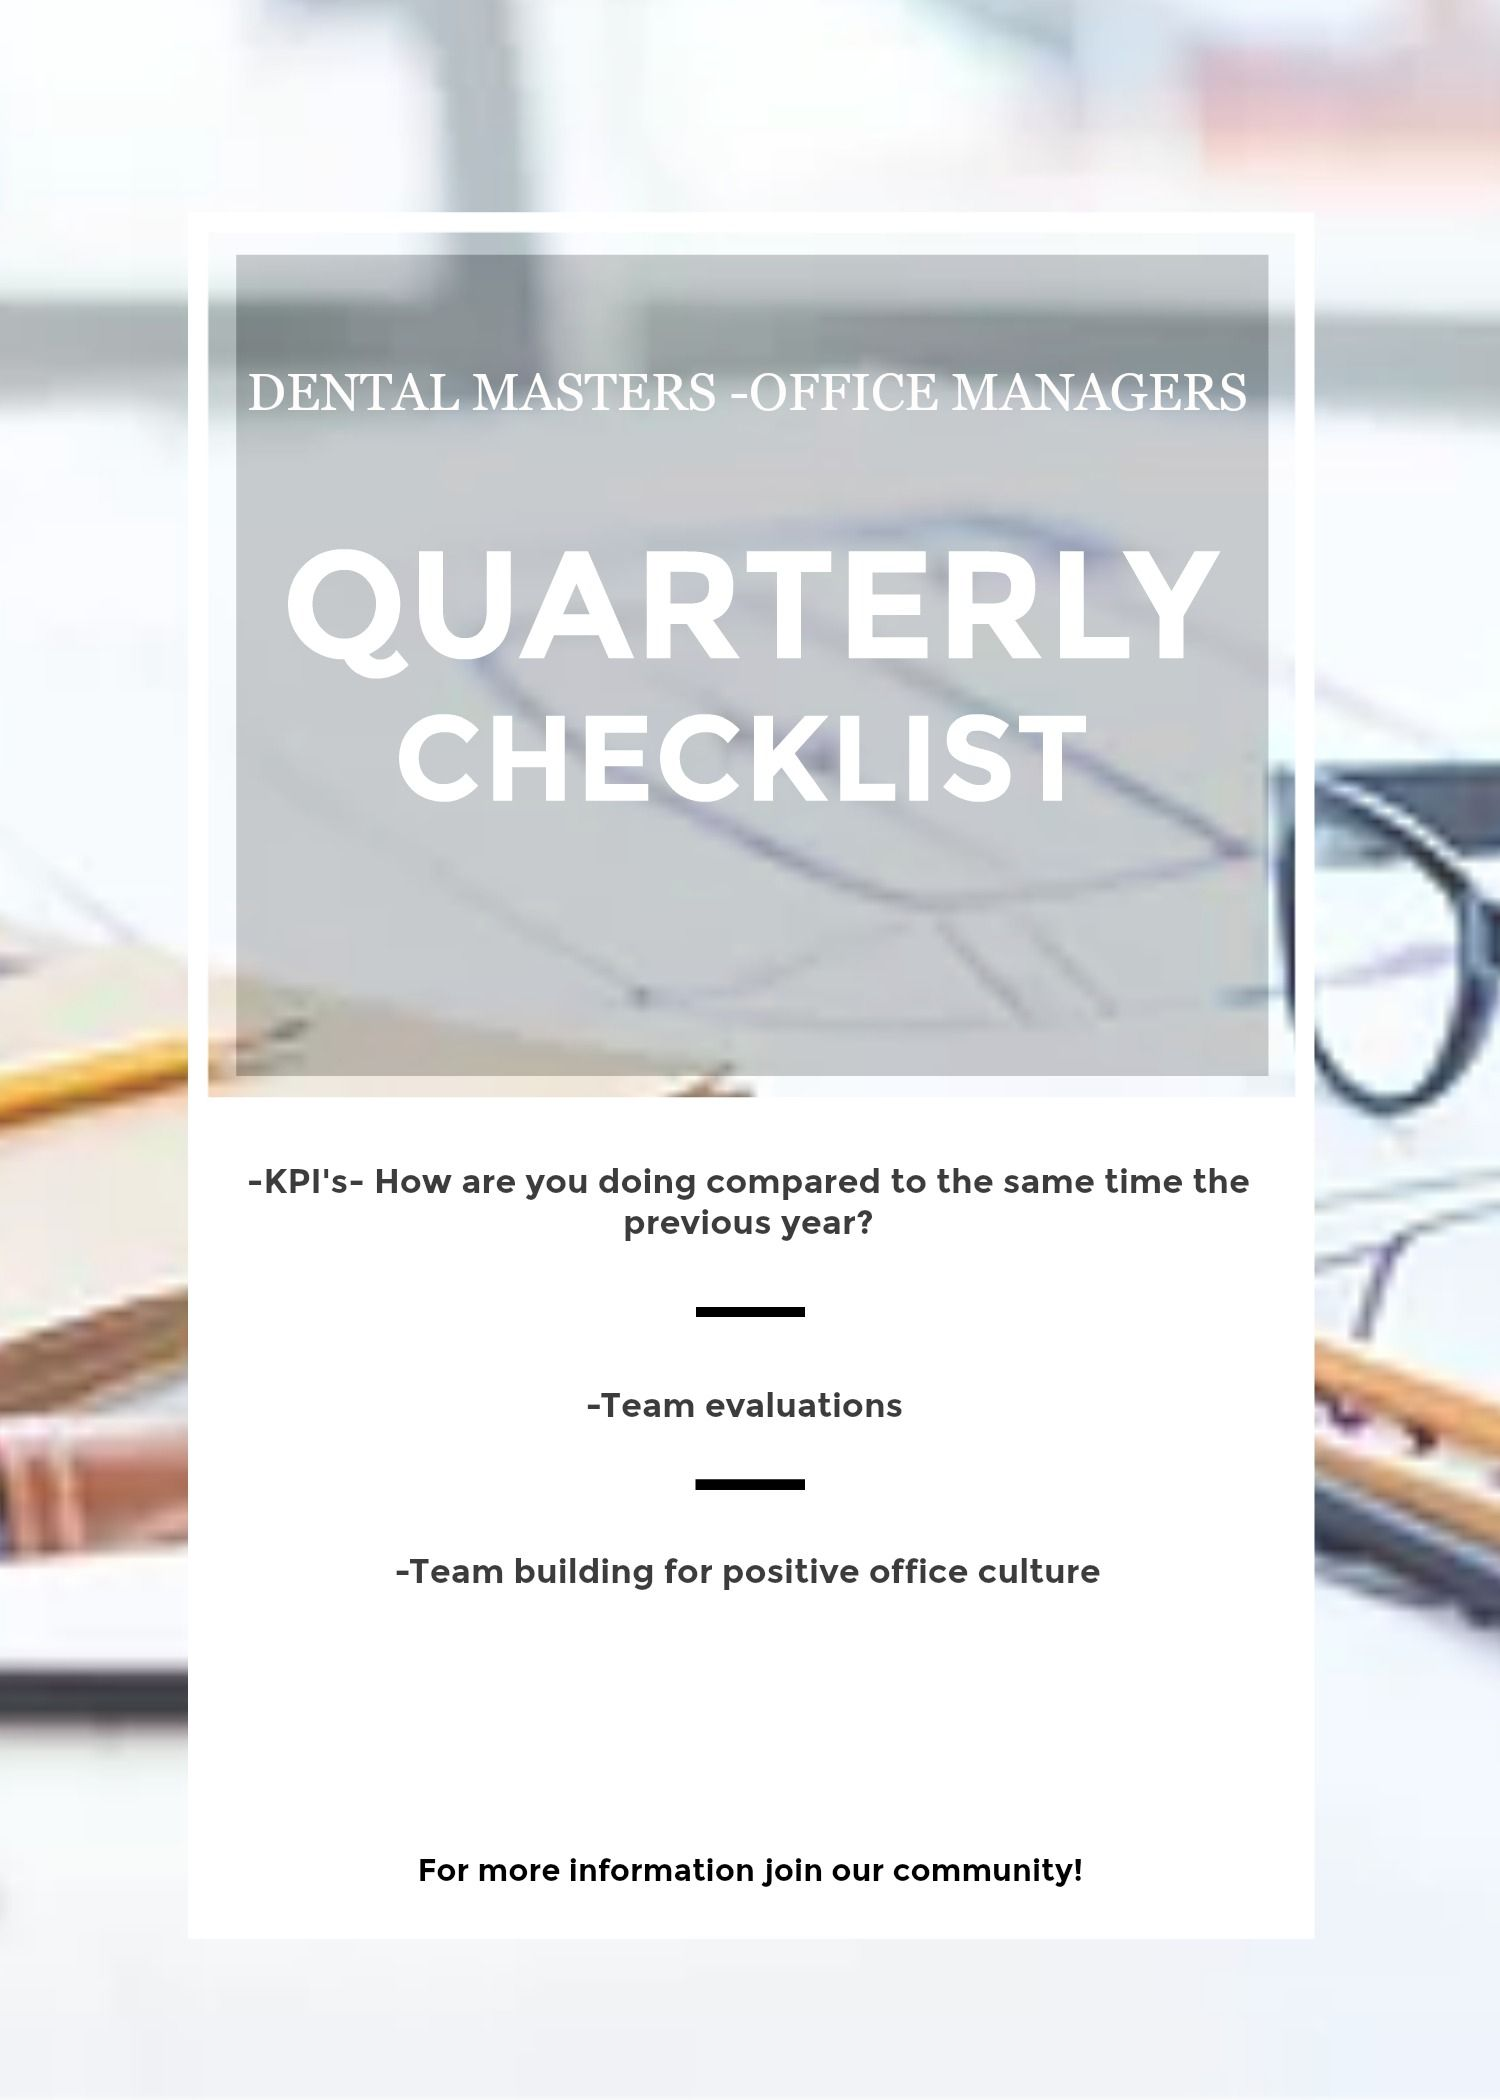 Office manager quarterly checklist dentistry dentalofficemanager office manager quarterly checklist dentistry dentalofficemanager dentist office dpp altavistaventures Images